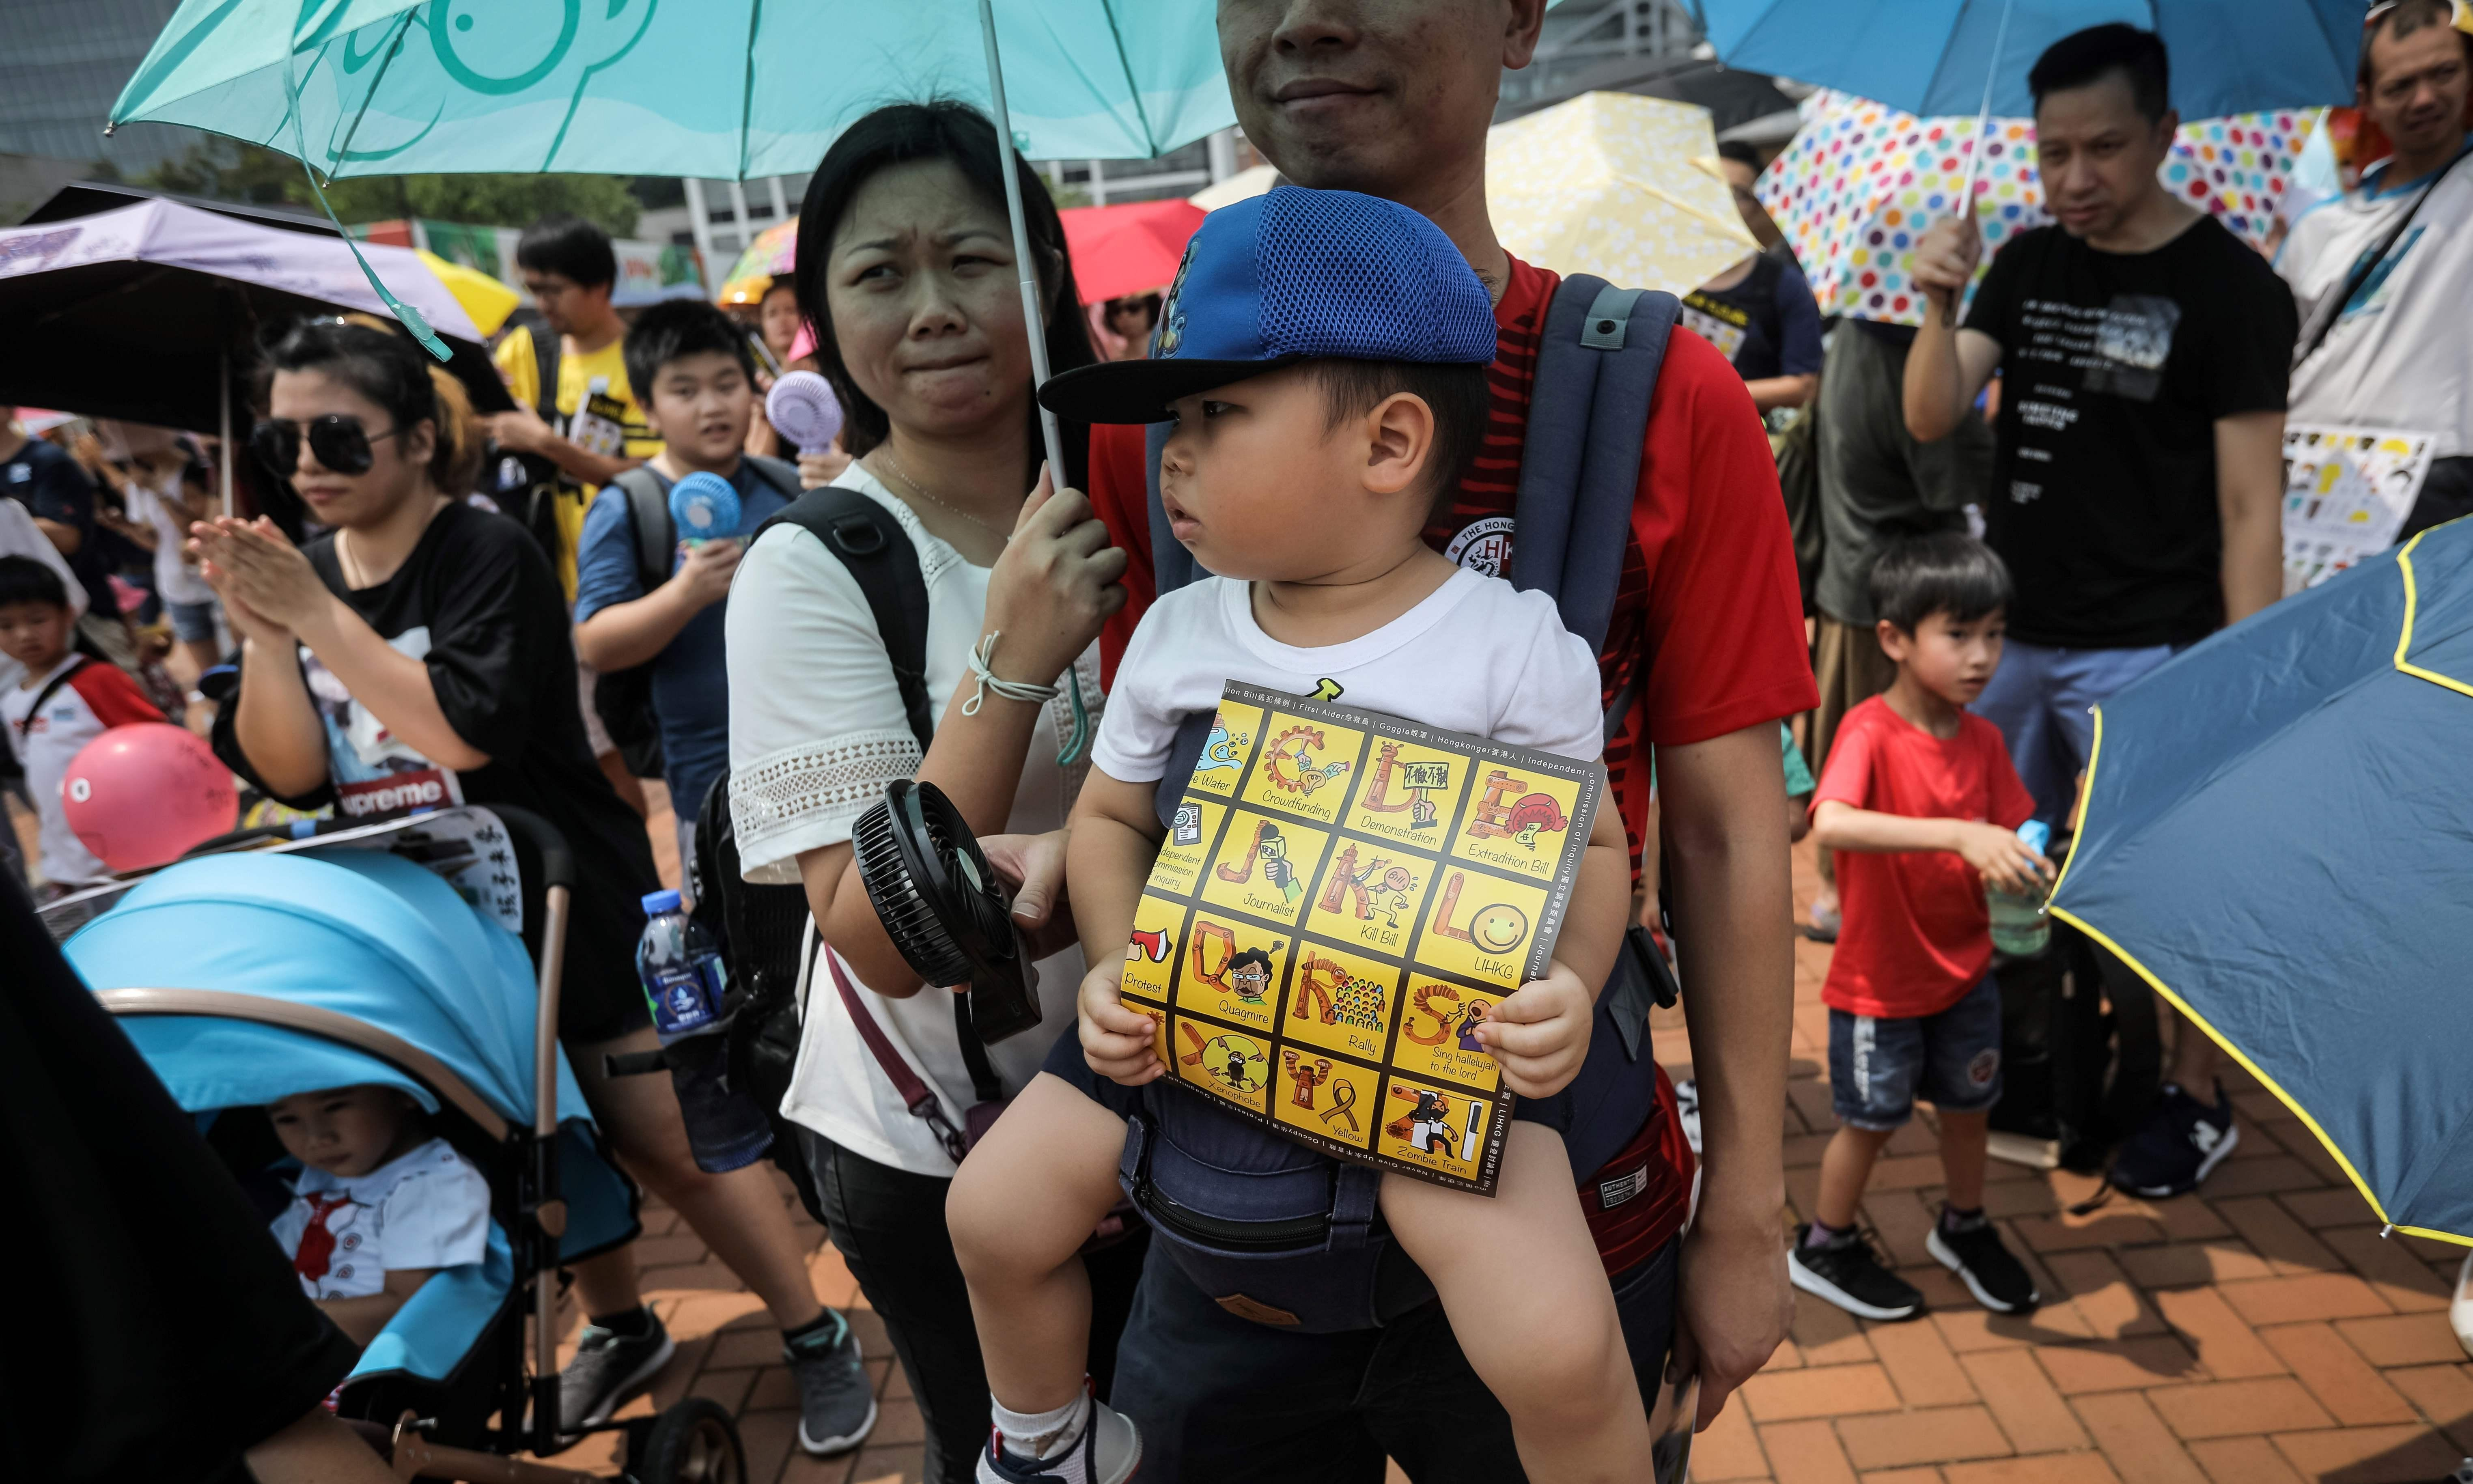 'P is for protest': Hong Kong families take to the streets in pro-democracy rally